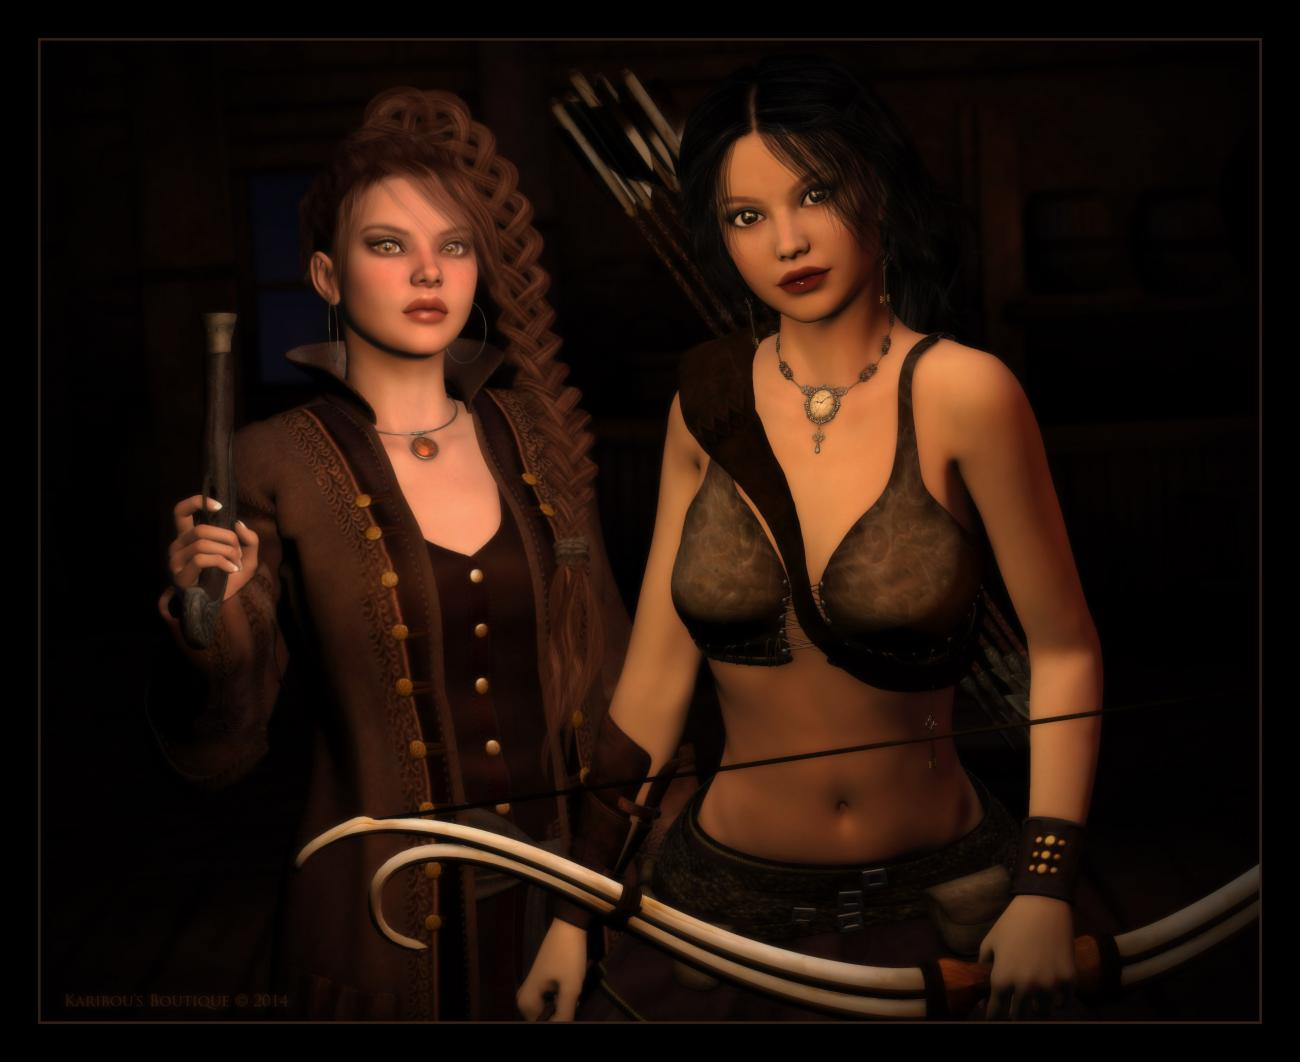 The Pirate and The Pagan by karibousboutique